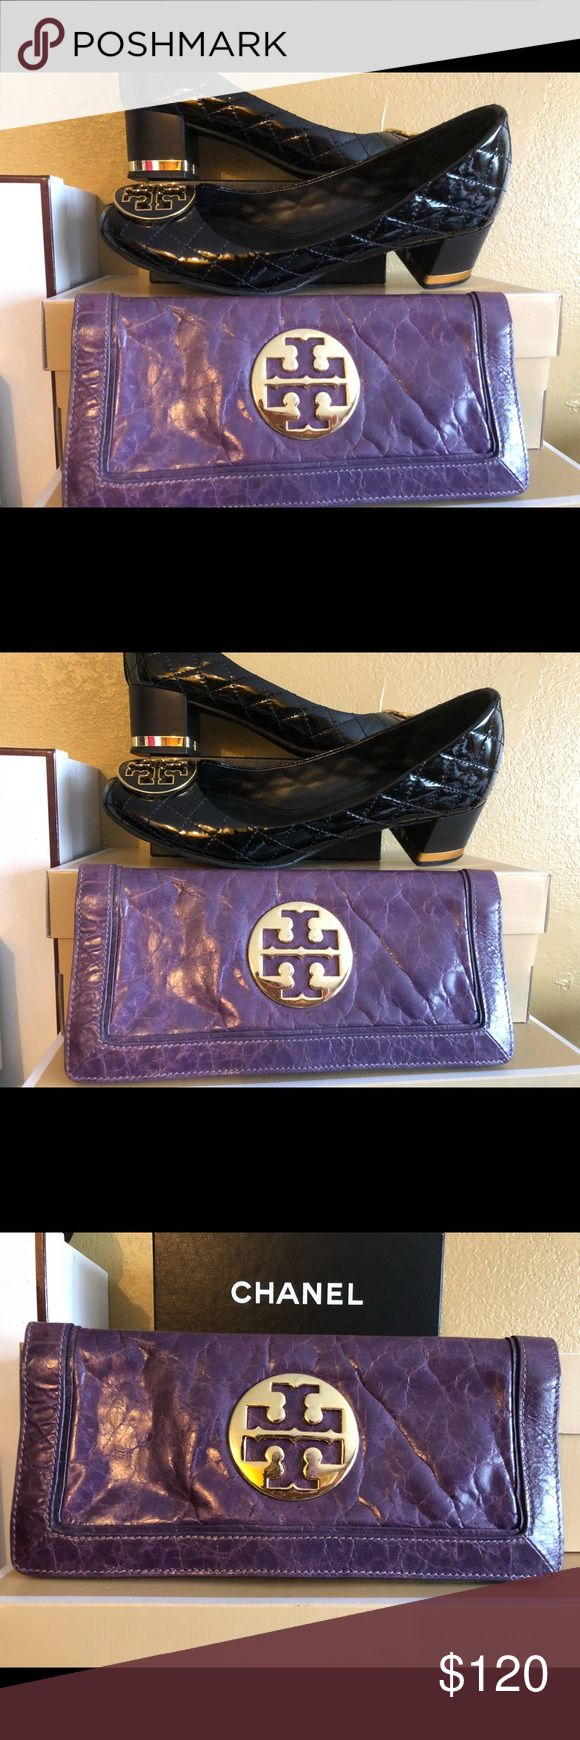 Tory Burch purple clutch/ wallet Clutch with credit card holder will also fit a Plus cell phone Tory Burch Bags Clutches & Wristlets